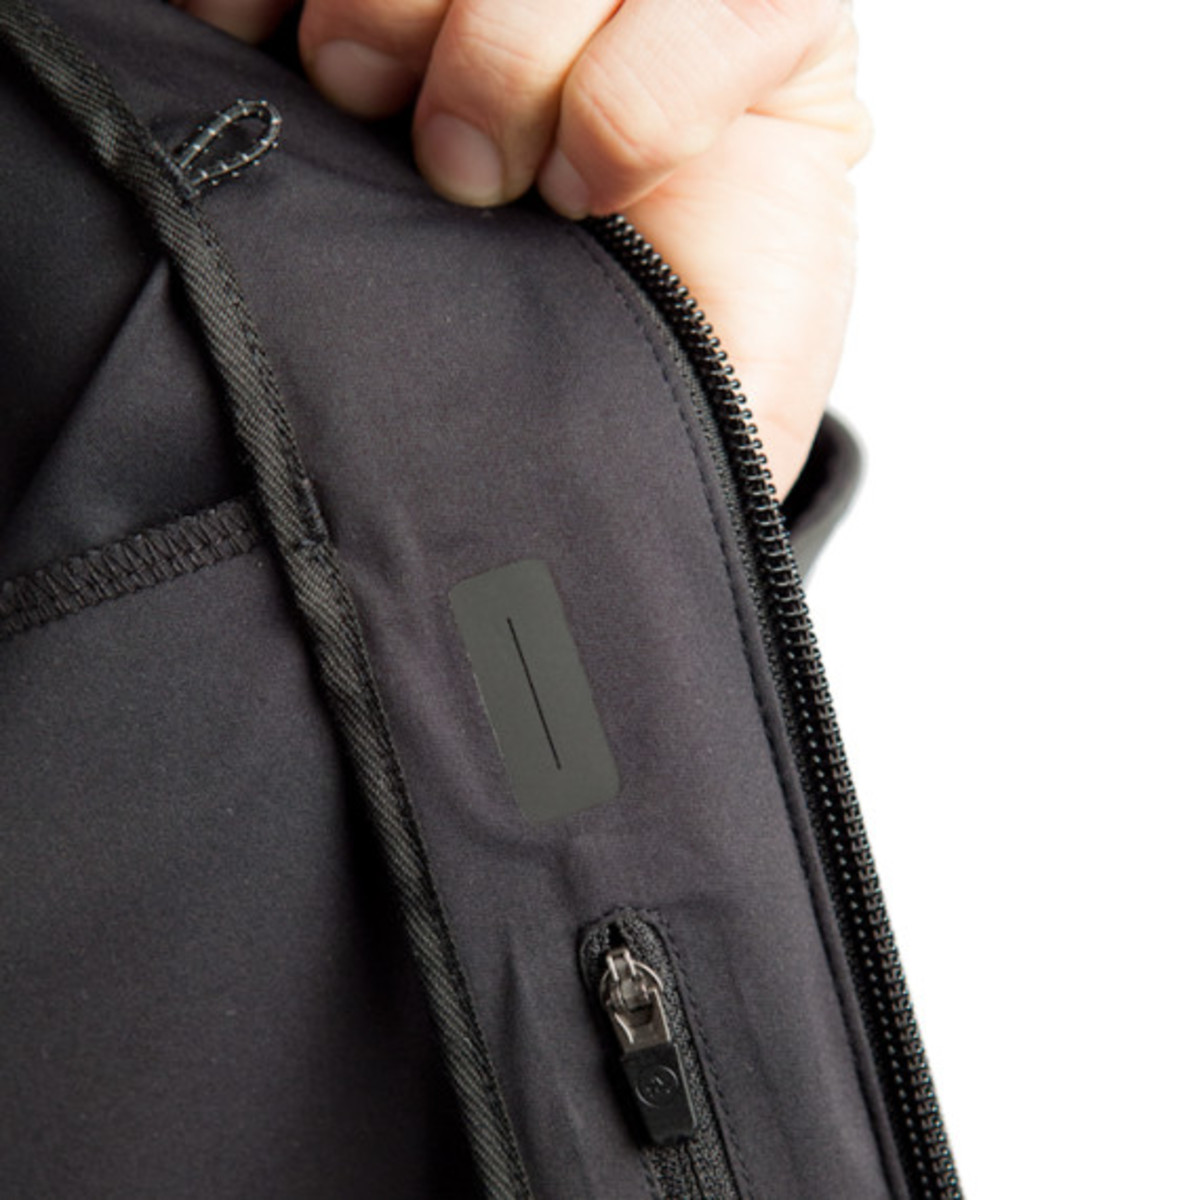 aether-union-bicycle-jacket-09